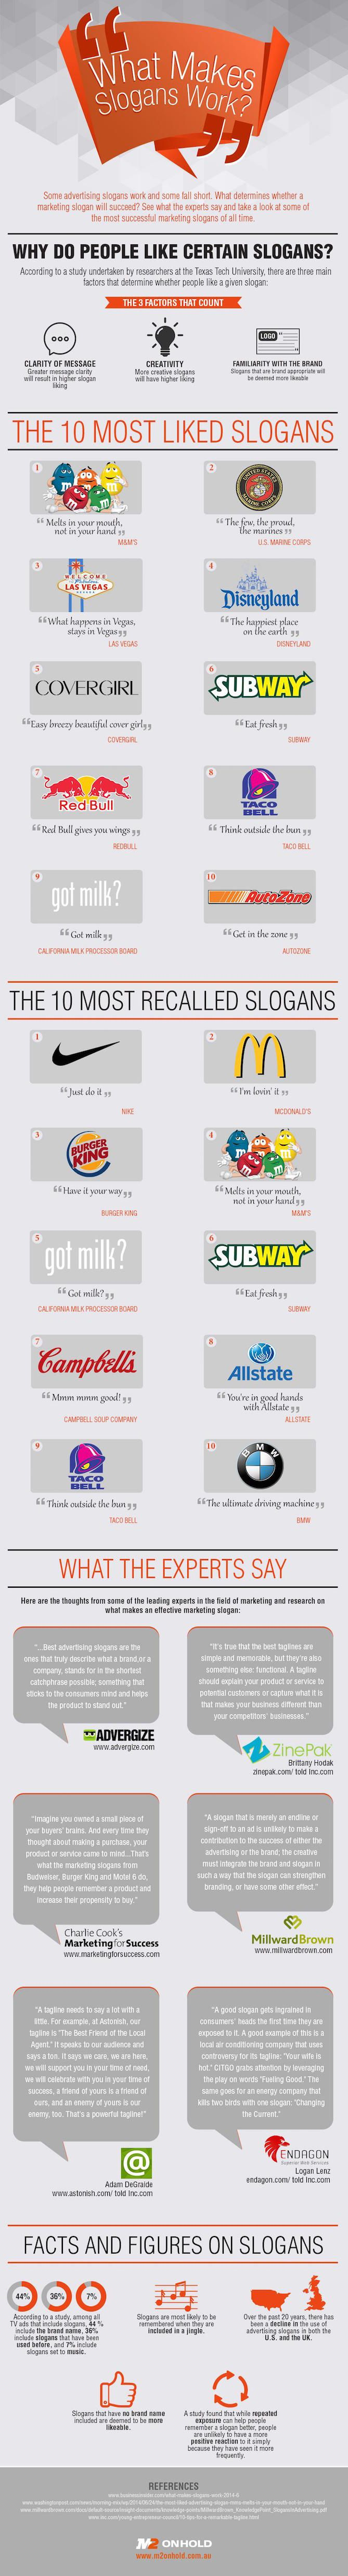 20 of the Most Memorable Brand Slogans [Infographic]